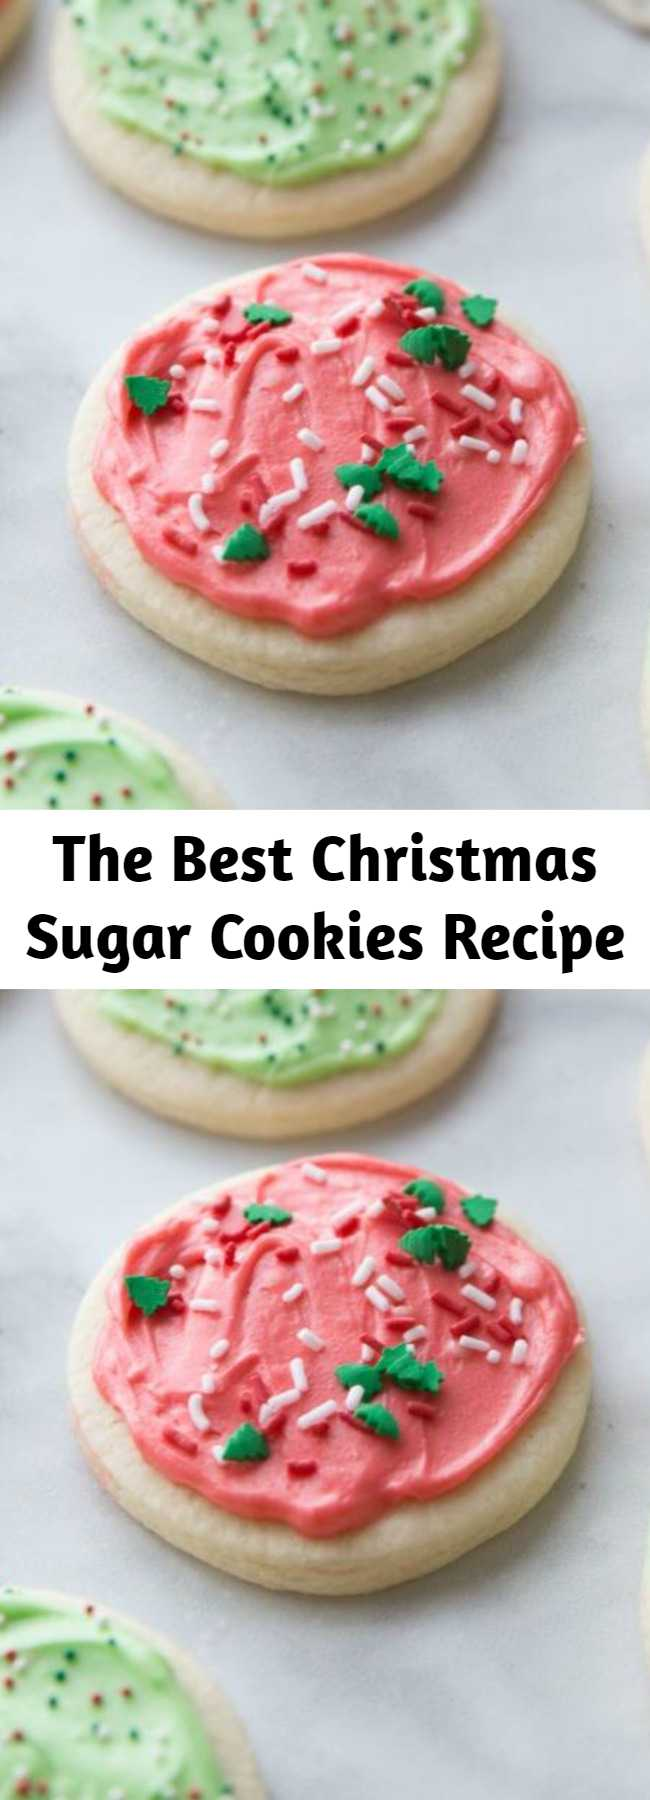 The Best Christmas Sugar Cookies Recipe - The Best Christmas Cookies for the holidays! Easy Sugar Cookies that everyone will LOVE! You have a melt in your mouth sugar cookies that are festive and fit into the holiday season. Soft cut out sugar cookies that require no chilling of the dough! This soft sugar cookie recipe will be a perfect fit to your baking needs this holiday season. #cookies #christmas #cookierecipe #cookieideas #christmascookies #snacks #treats